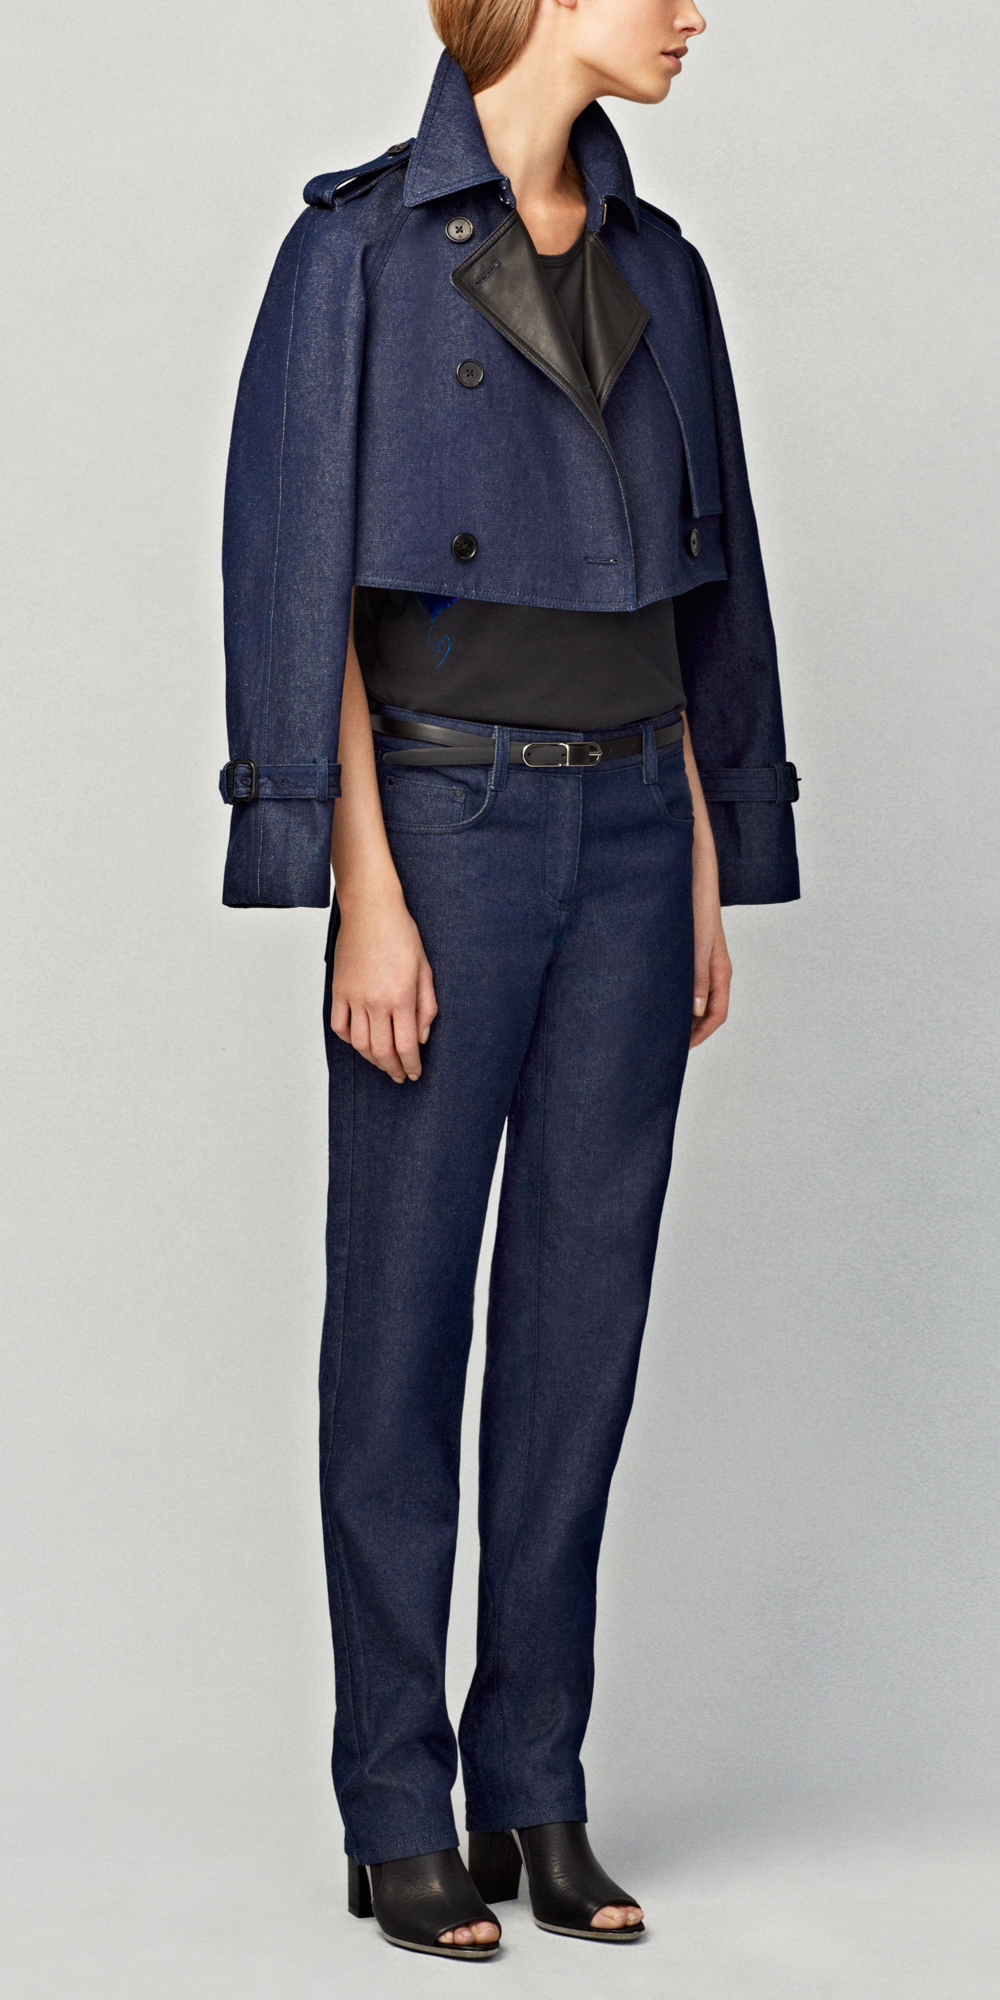 Phillip_Lim_denim_capsule_05.jpg